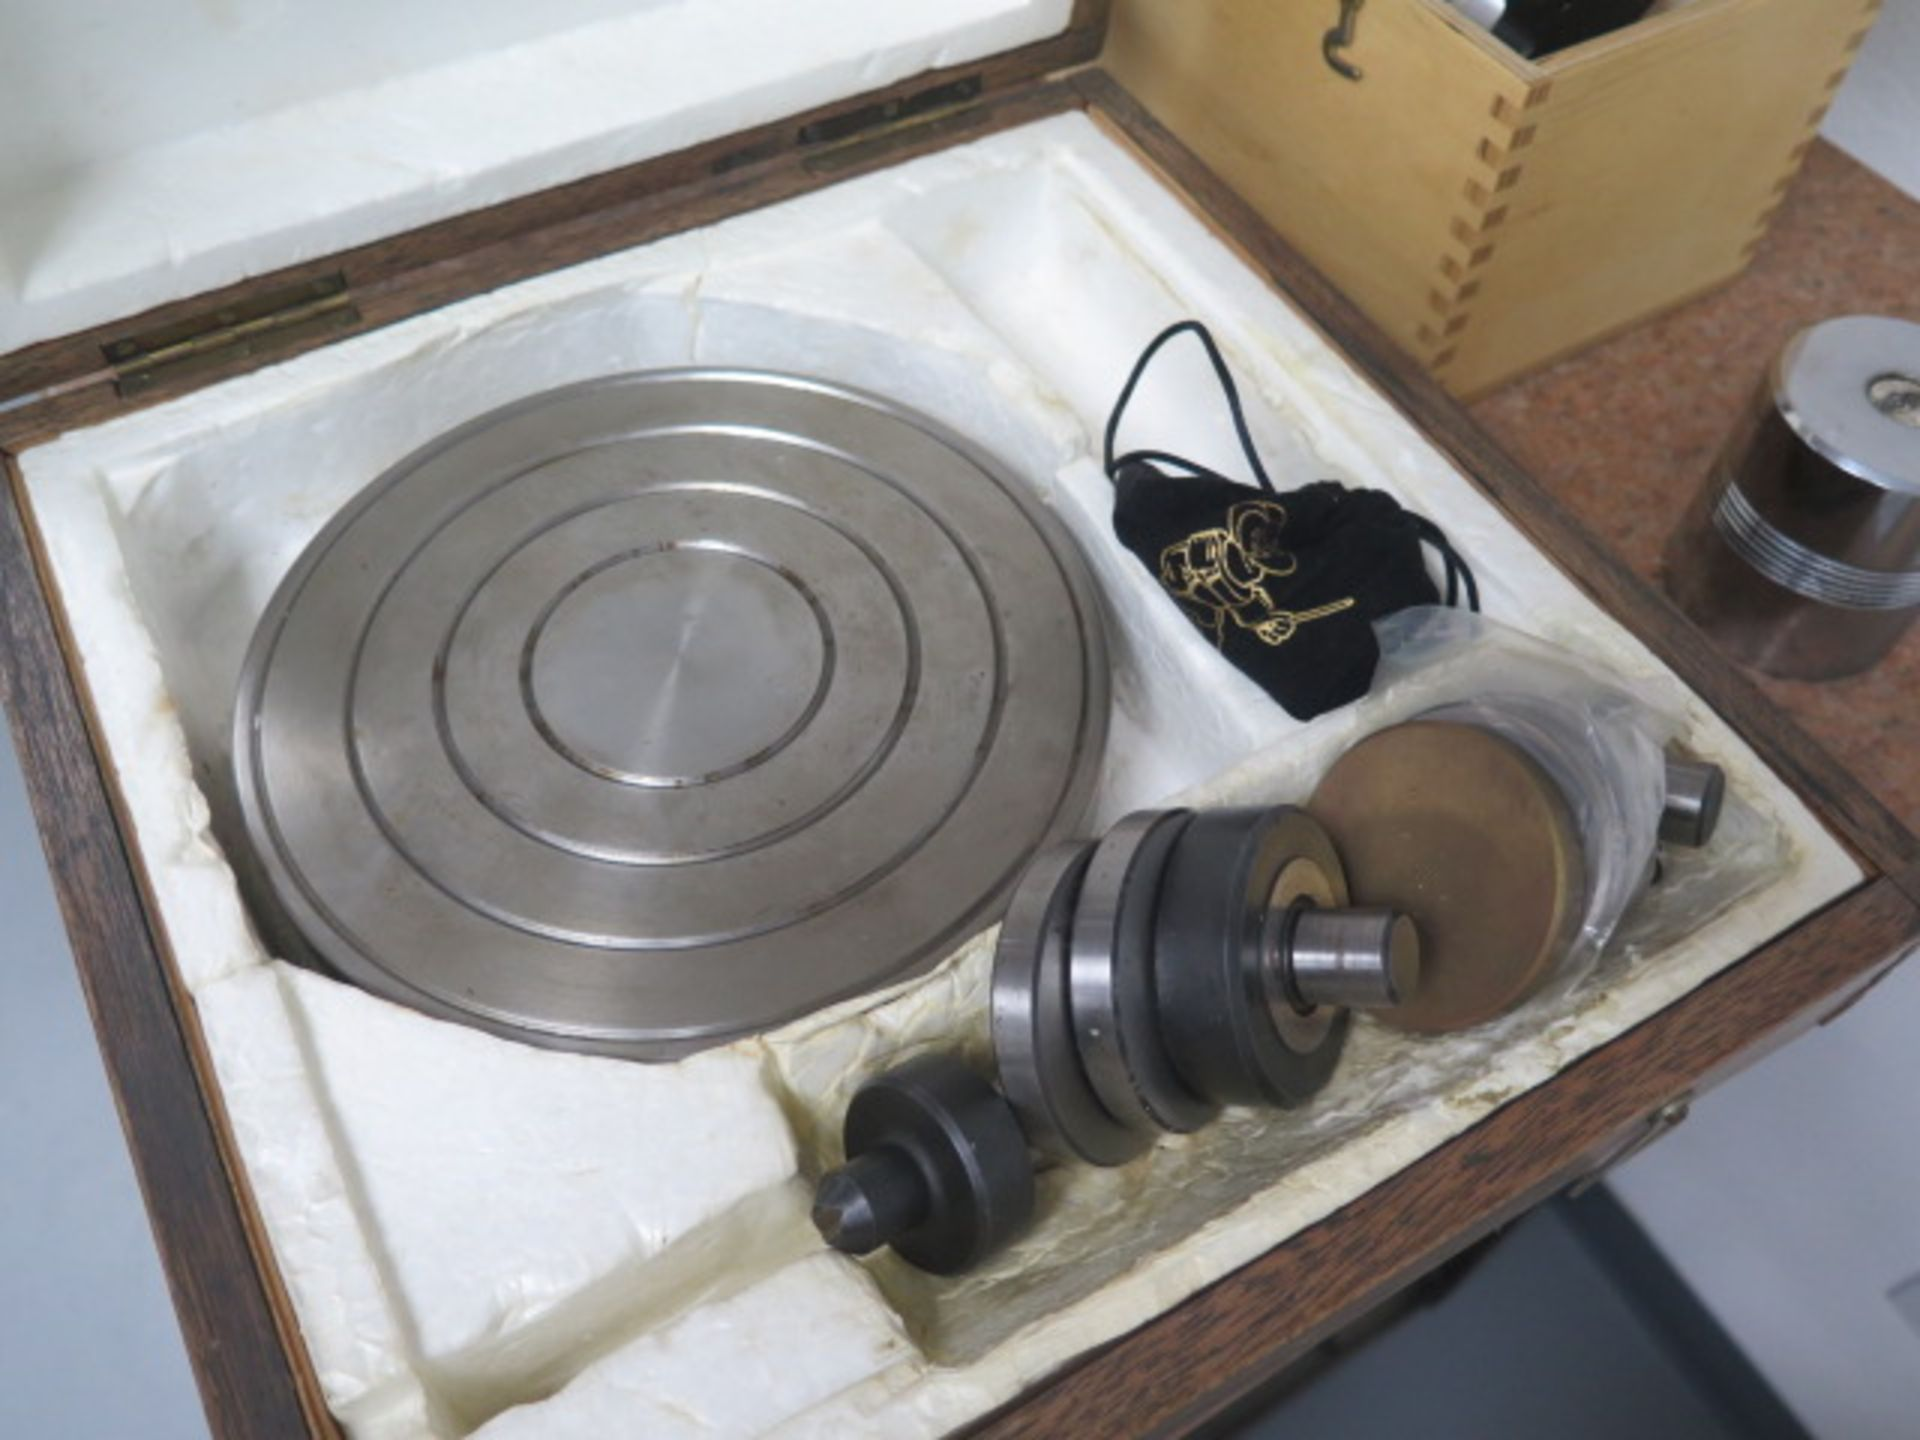 Rockwell Hardness Tester w/ Accessories (SOLD AS-IS - NO WARRANTY) - Image 9 of 9